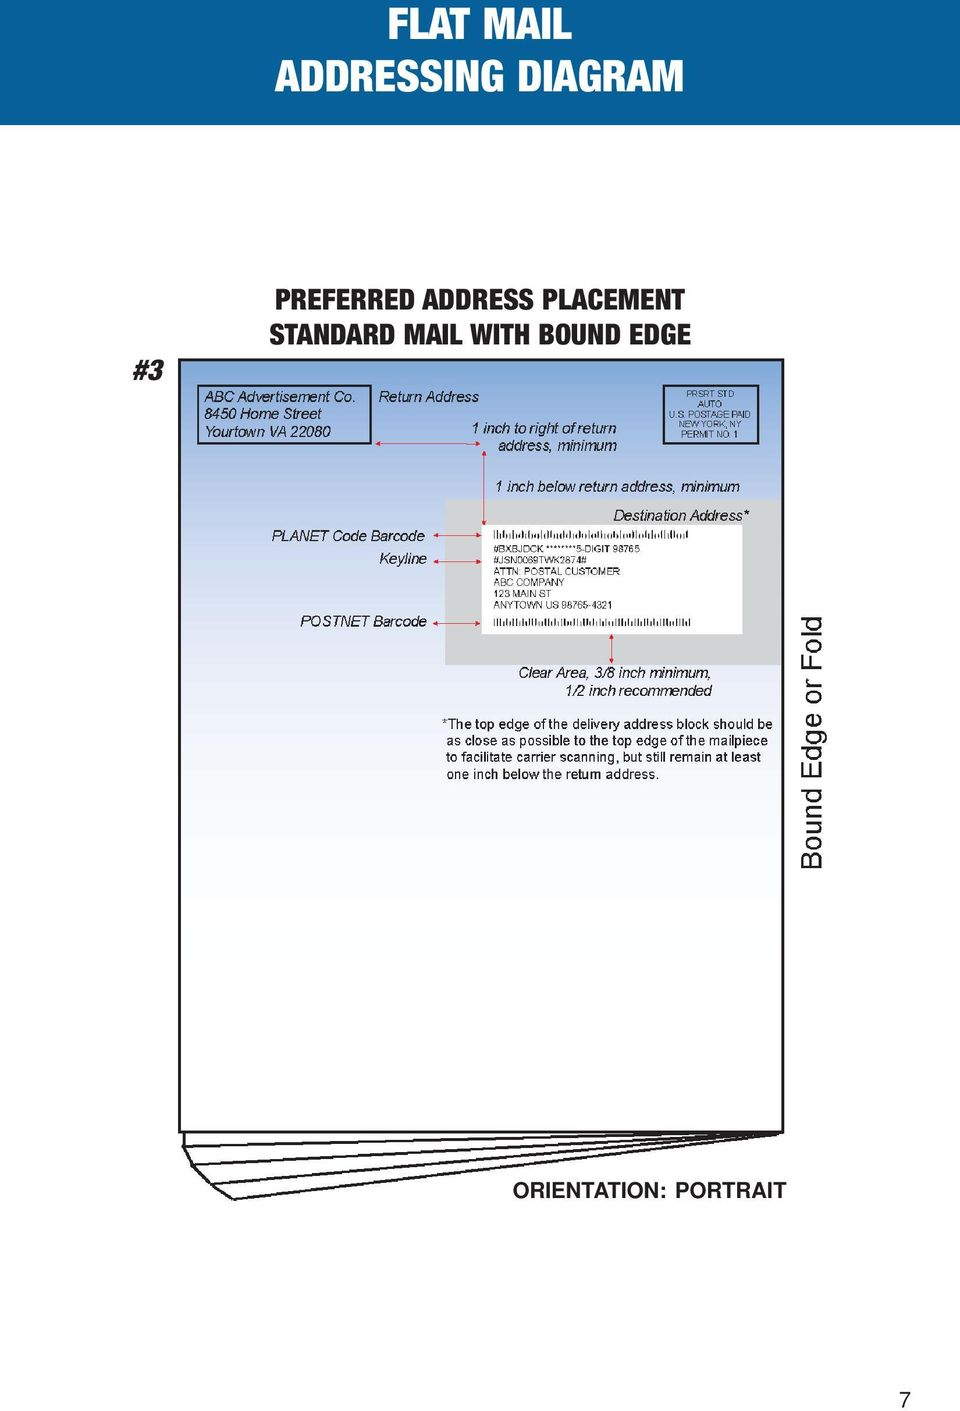 PLACEMENT STANDARD MAIL WITH